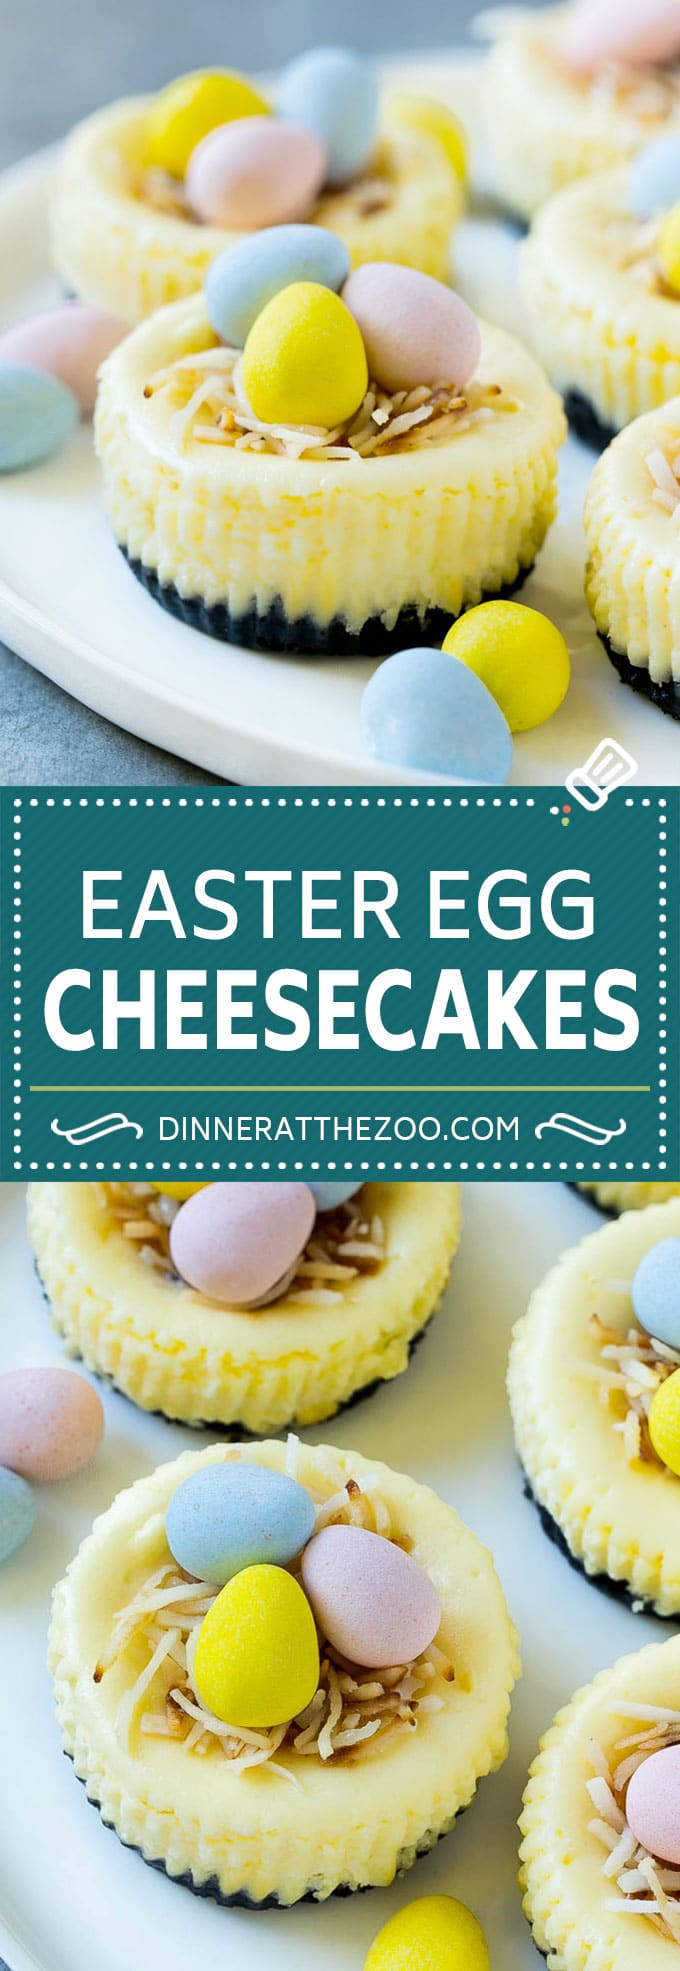 Easter Egg Cheesecakes Recipe Mini Dessert Birds Nest Cheesecake